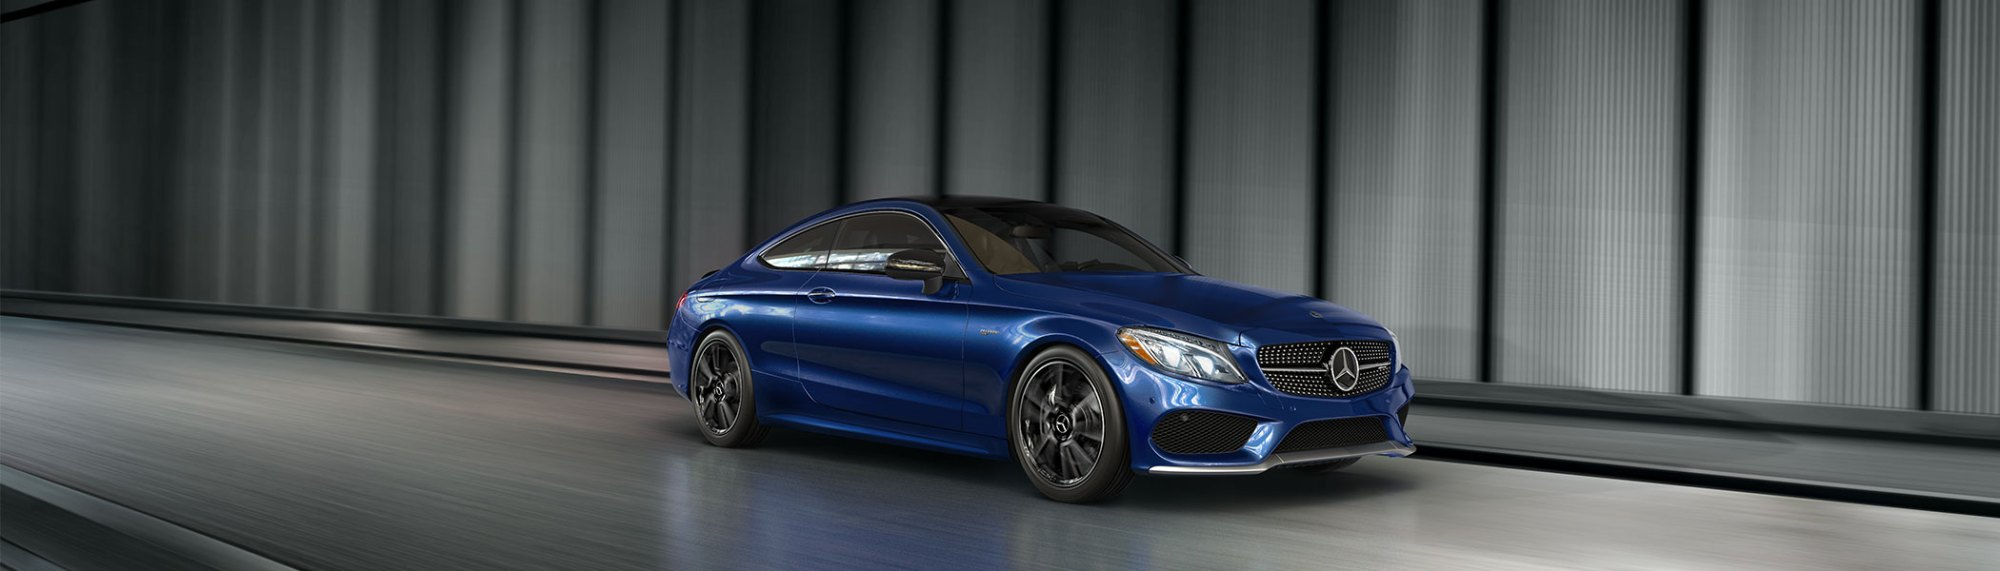 hight resolution of c class coupe